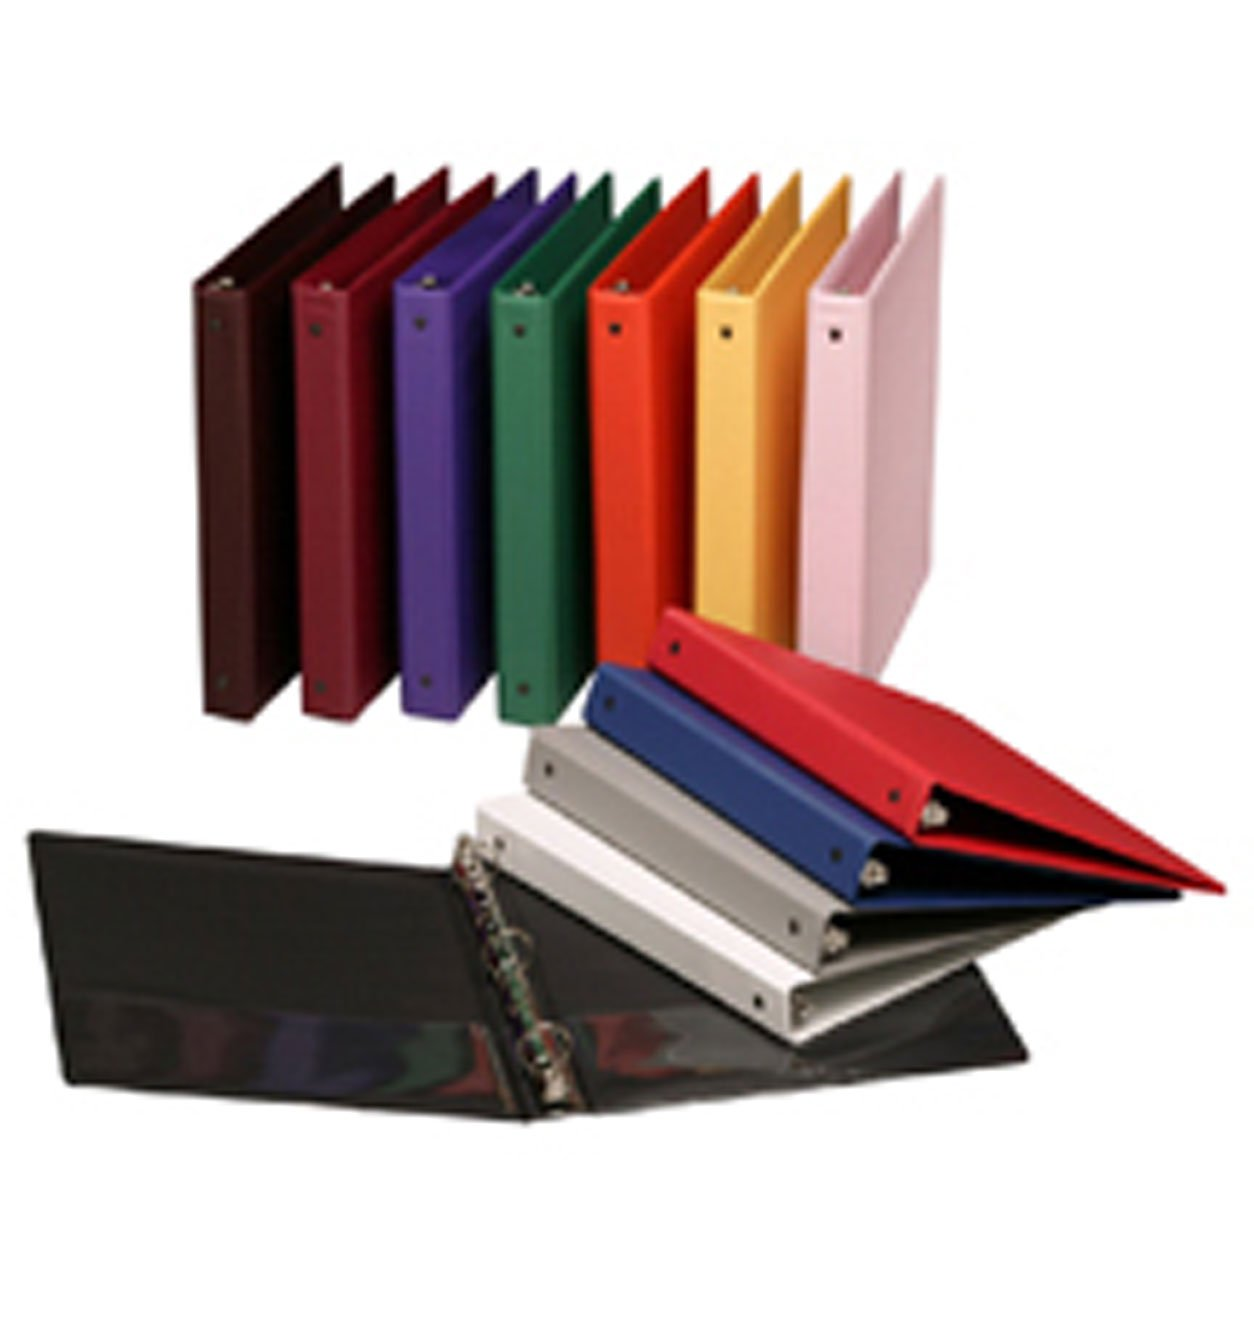 Assorted Colors View Binders, 1-1/2 inch Capacity, 8.5 x 11, Case of 12